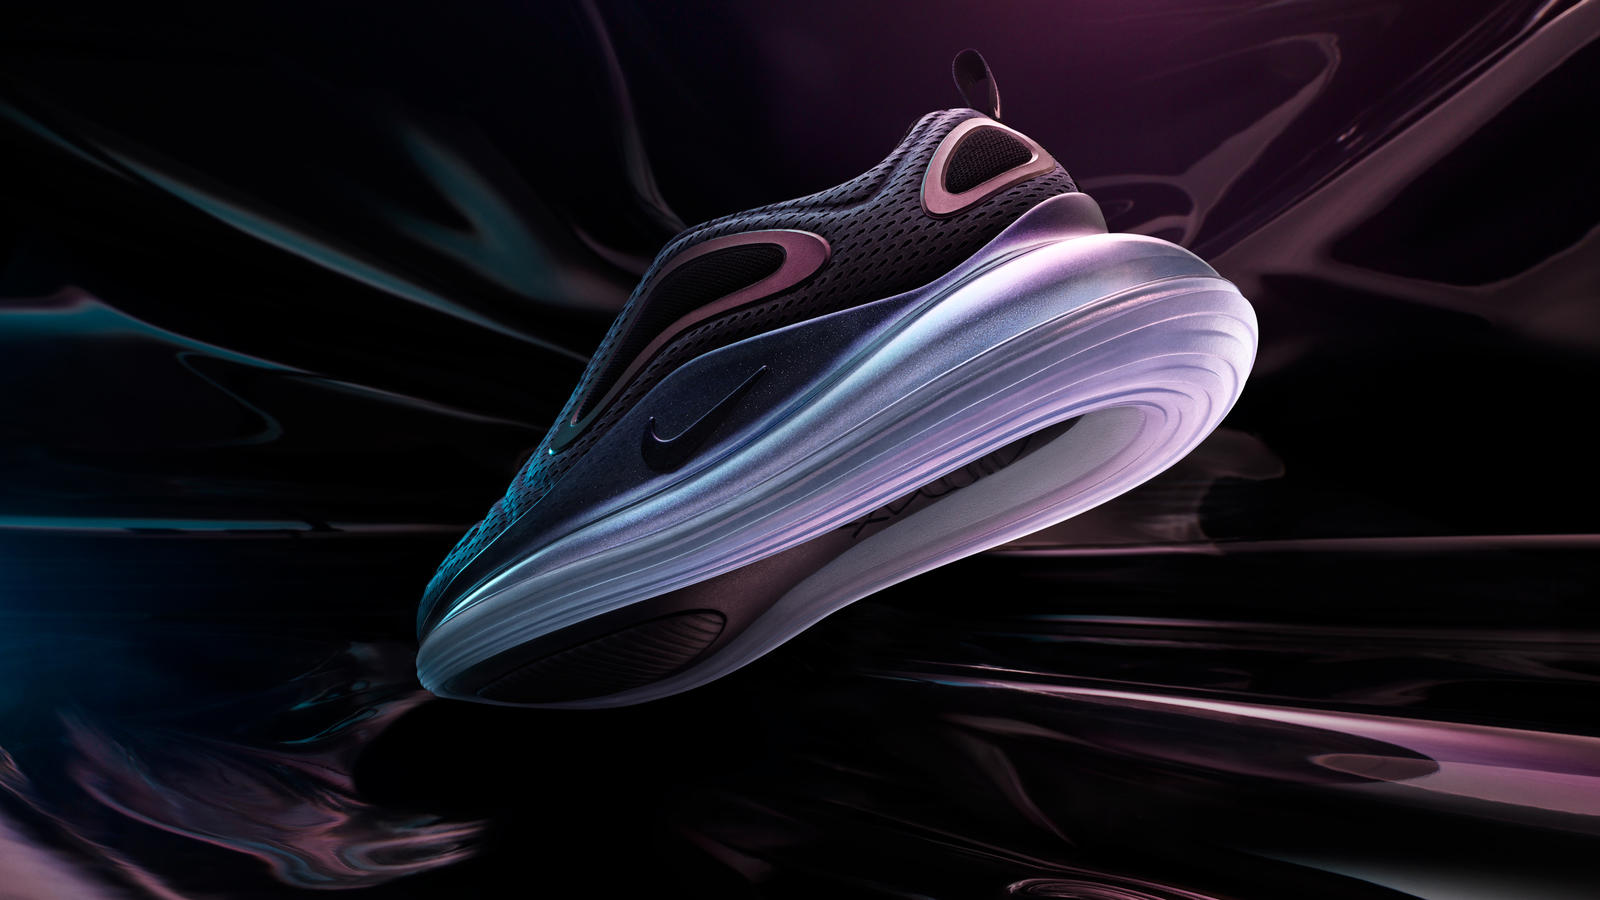 La espectacular Nike Air Max 720